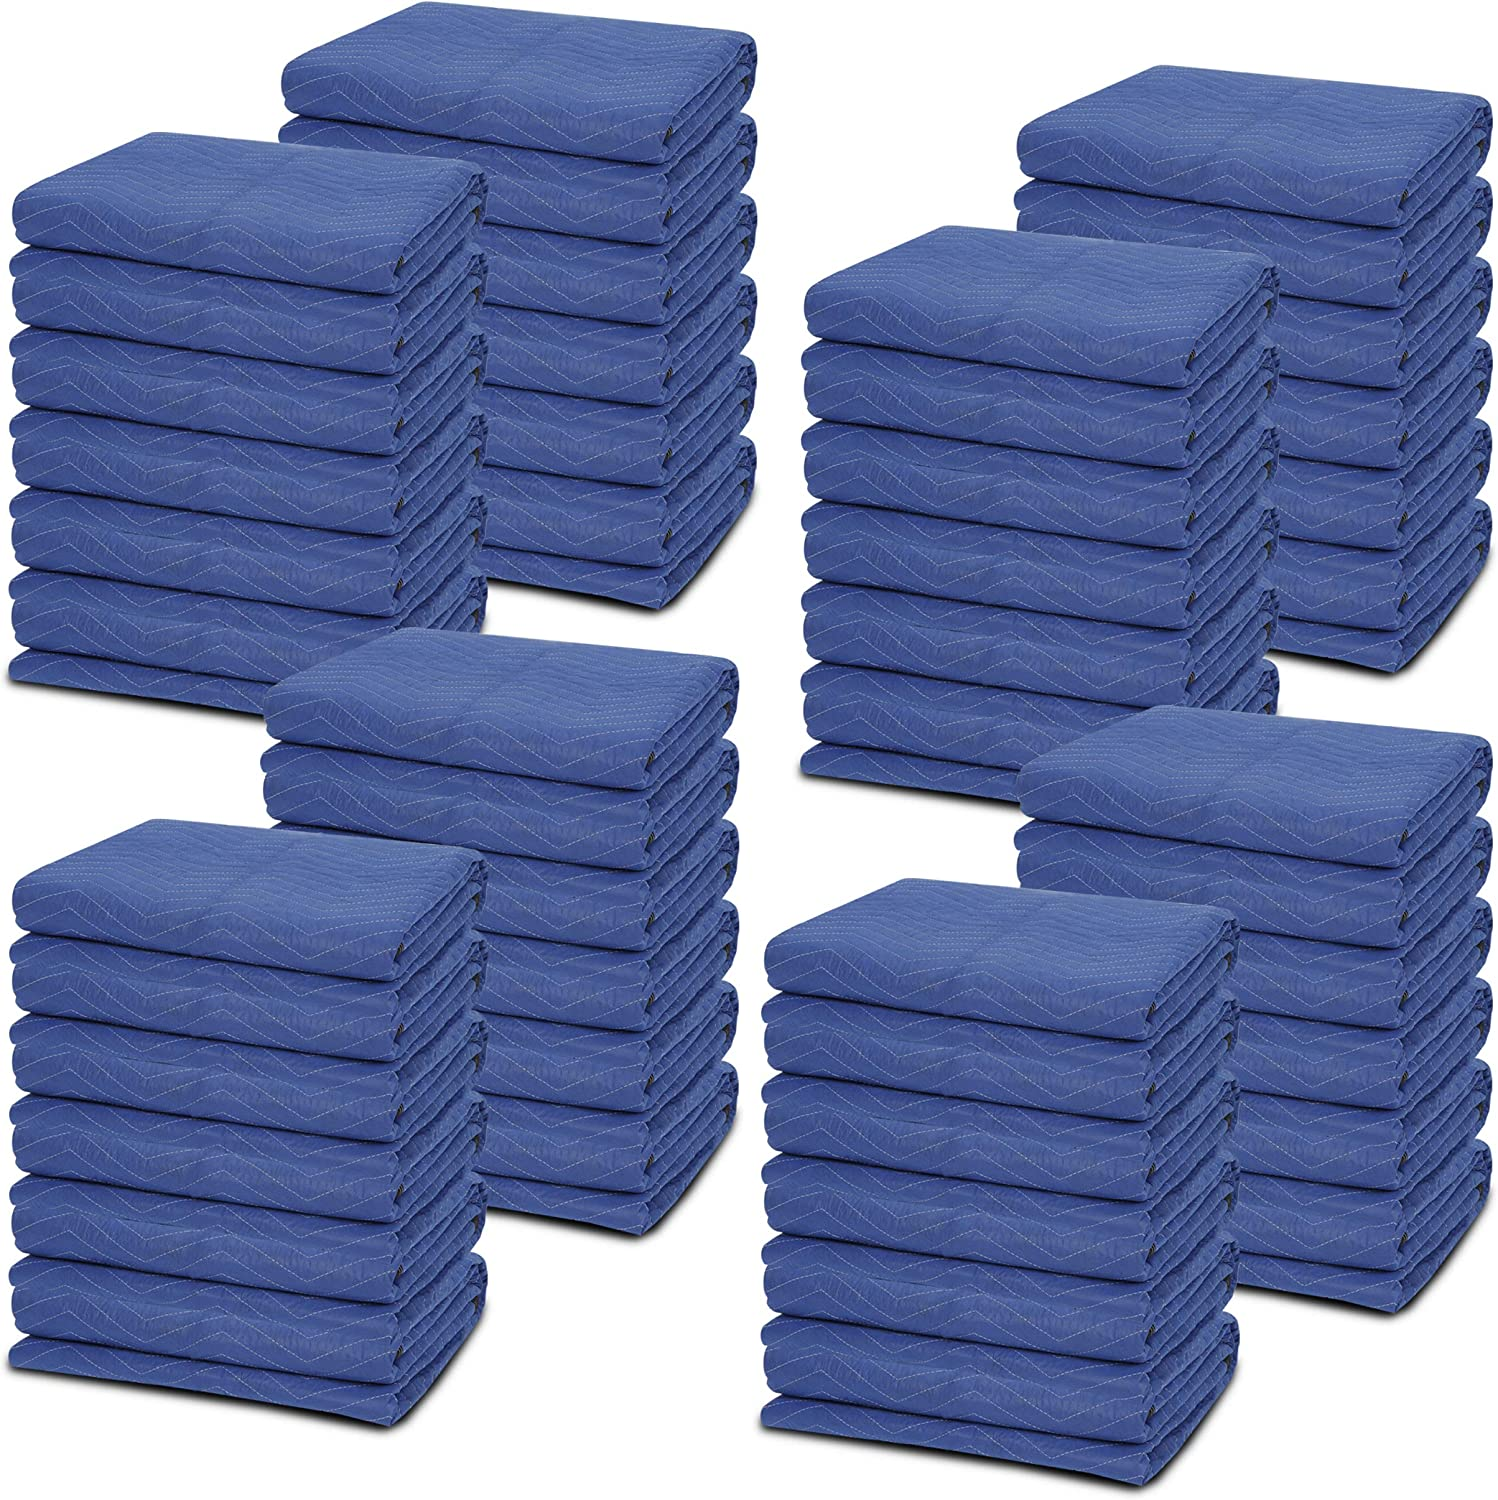 ZENY 48 Pack Moving Packing Blankets 80''x 72''(35 lb/dz Weight) Pro Quilted Shipping Furniture Pads Mover Moving Pads